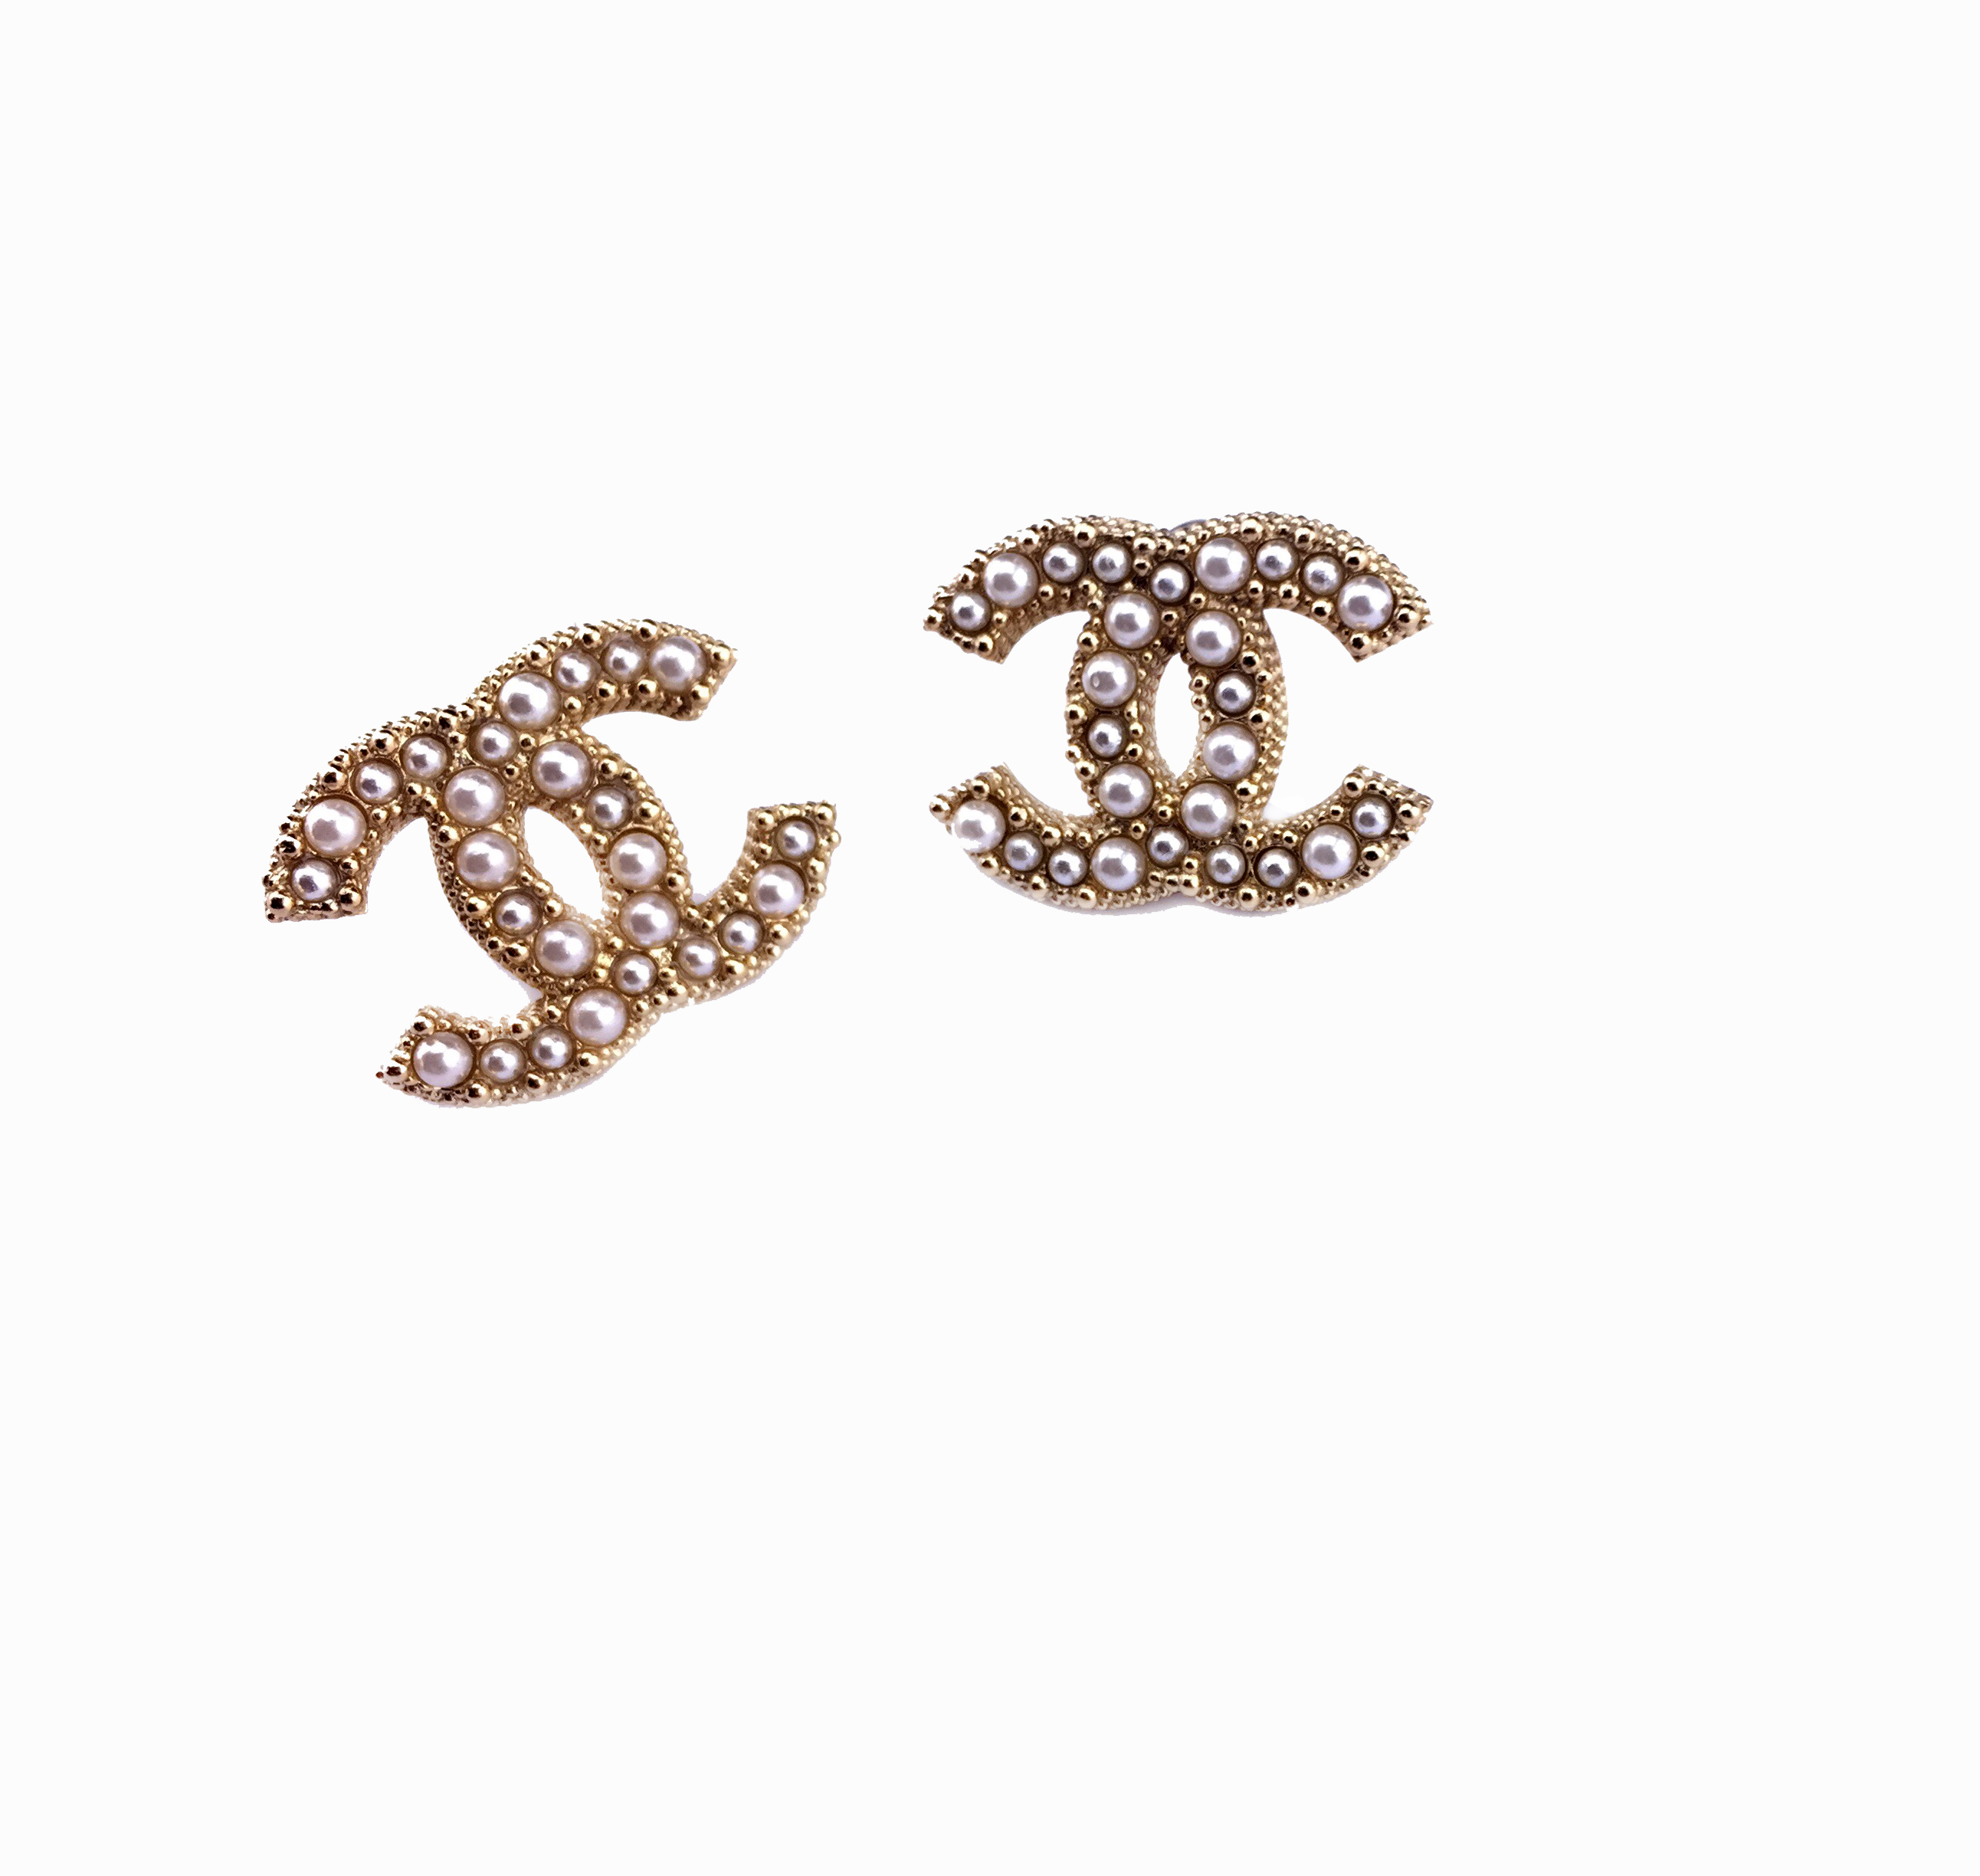 stud selin sophia sk wd earrings product sophiastuds jewellery diamond kent ahalife rg